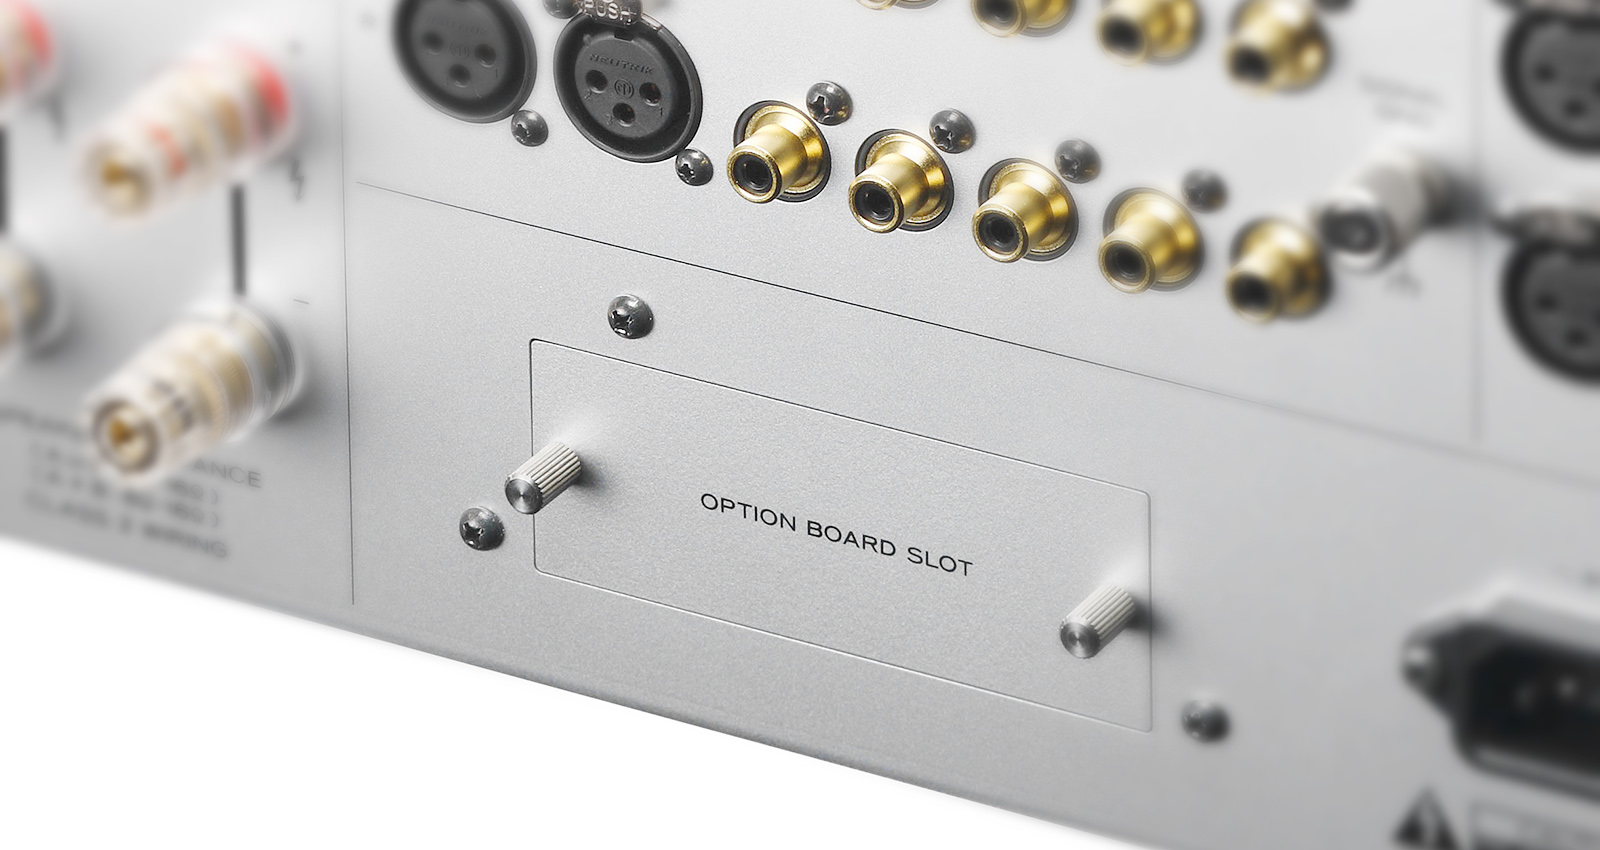 Esoteric F-03A Integrated Amplifier Made In Japan F-03a_option_board_slot